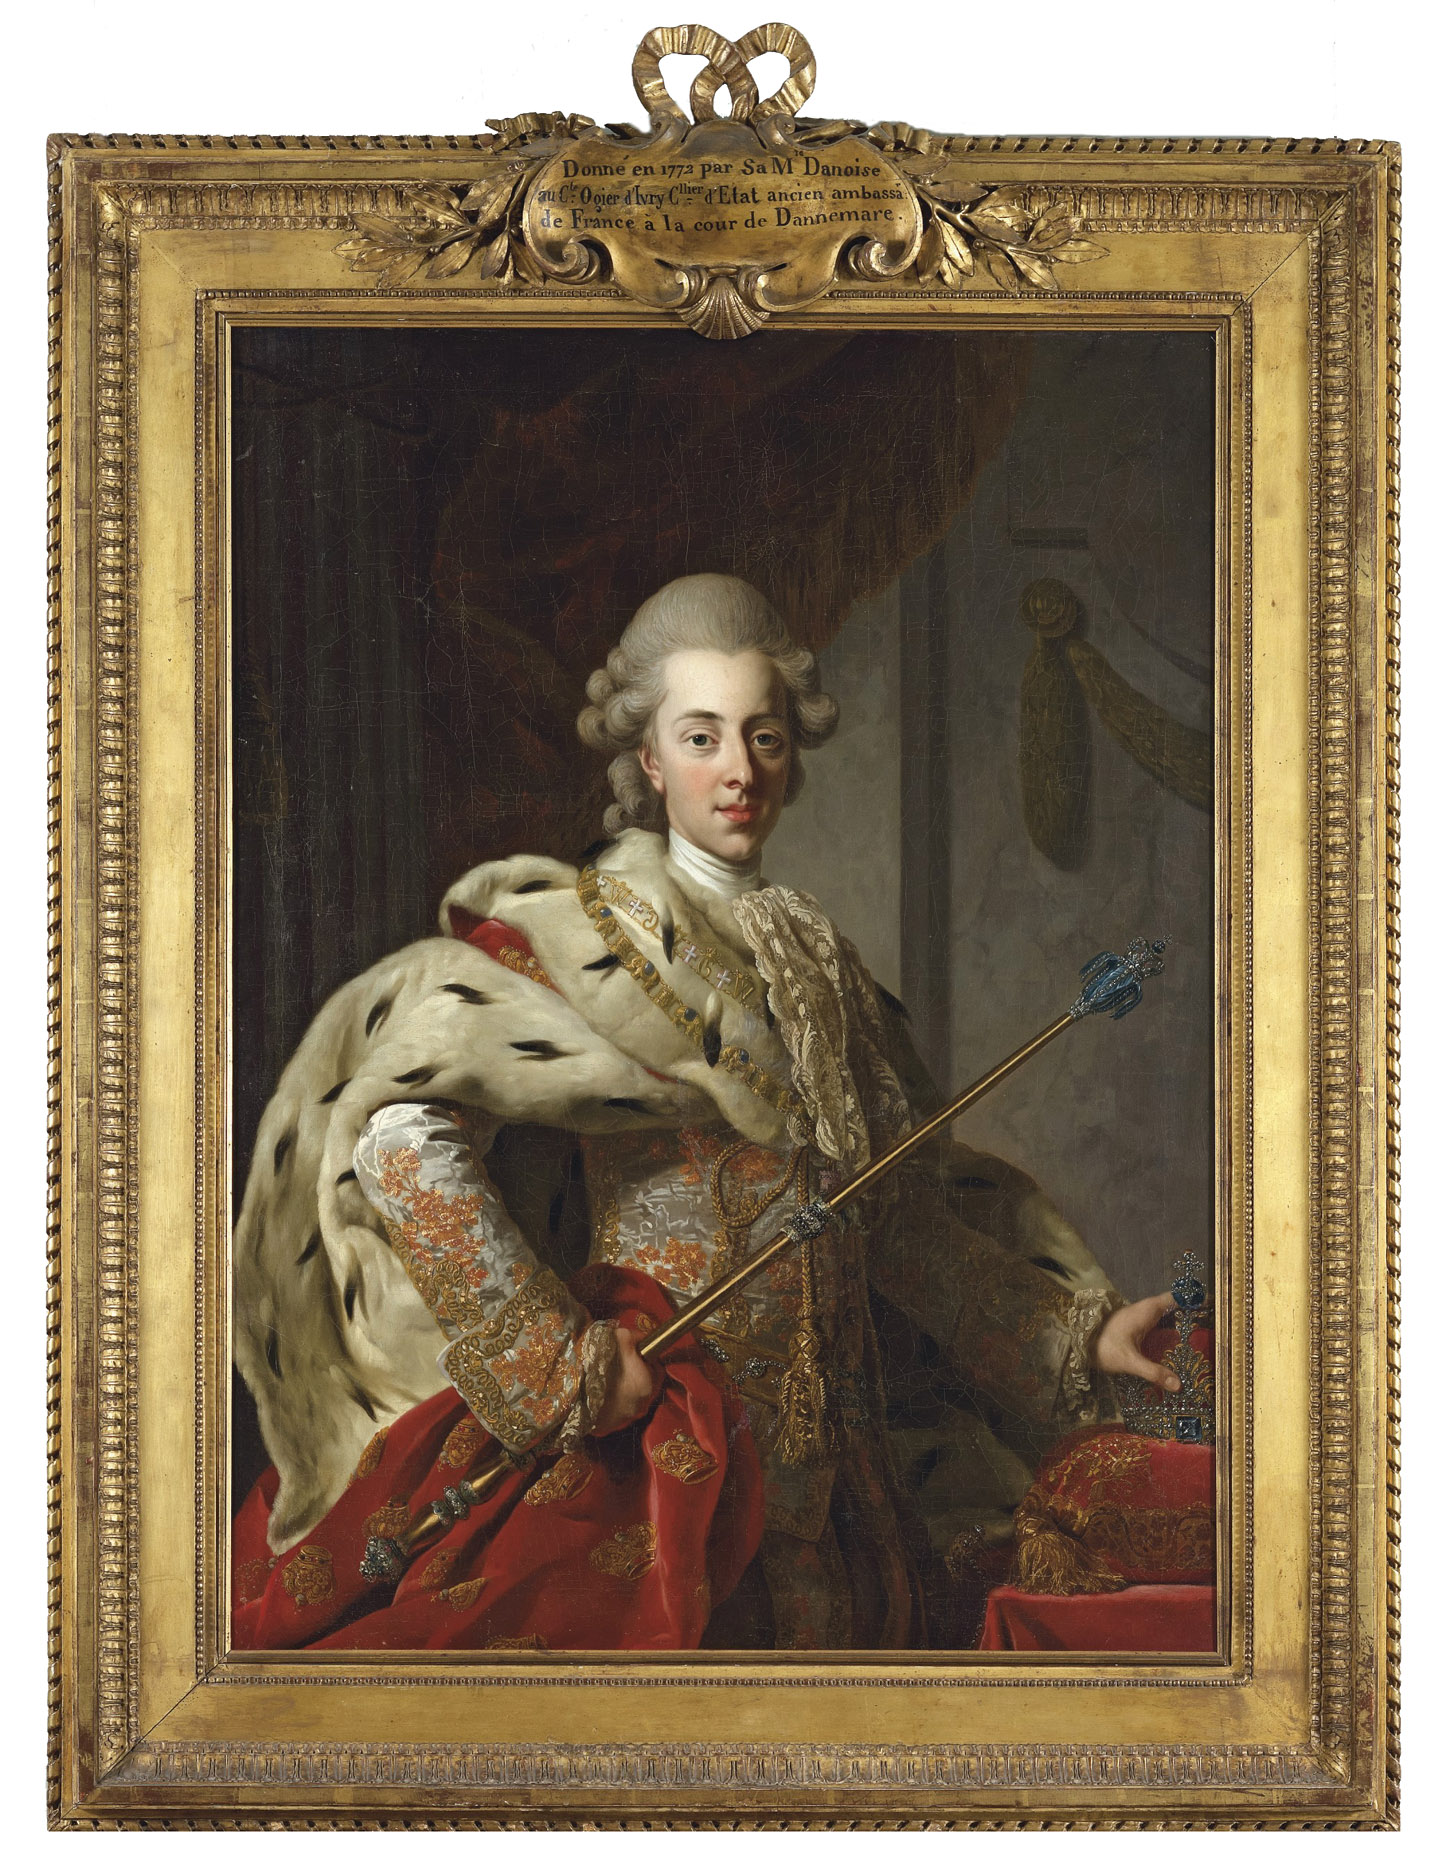 Portrait of King Christian VII of Denmark, half-length, in coronation robes and holding a crown and sceptre